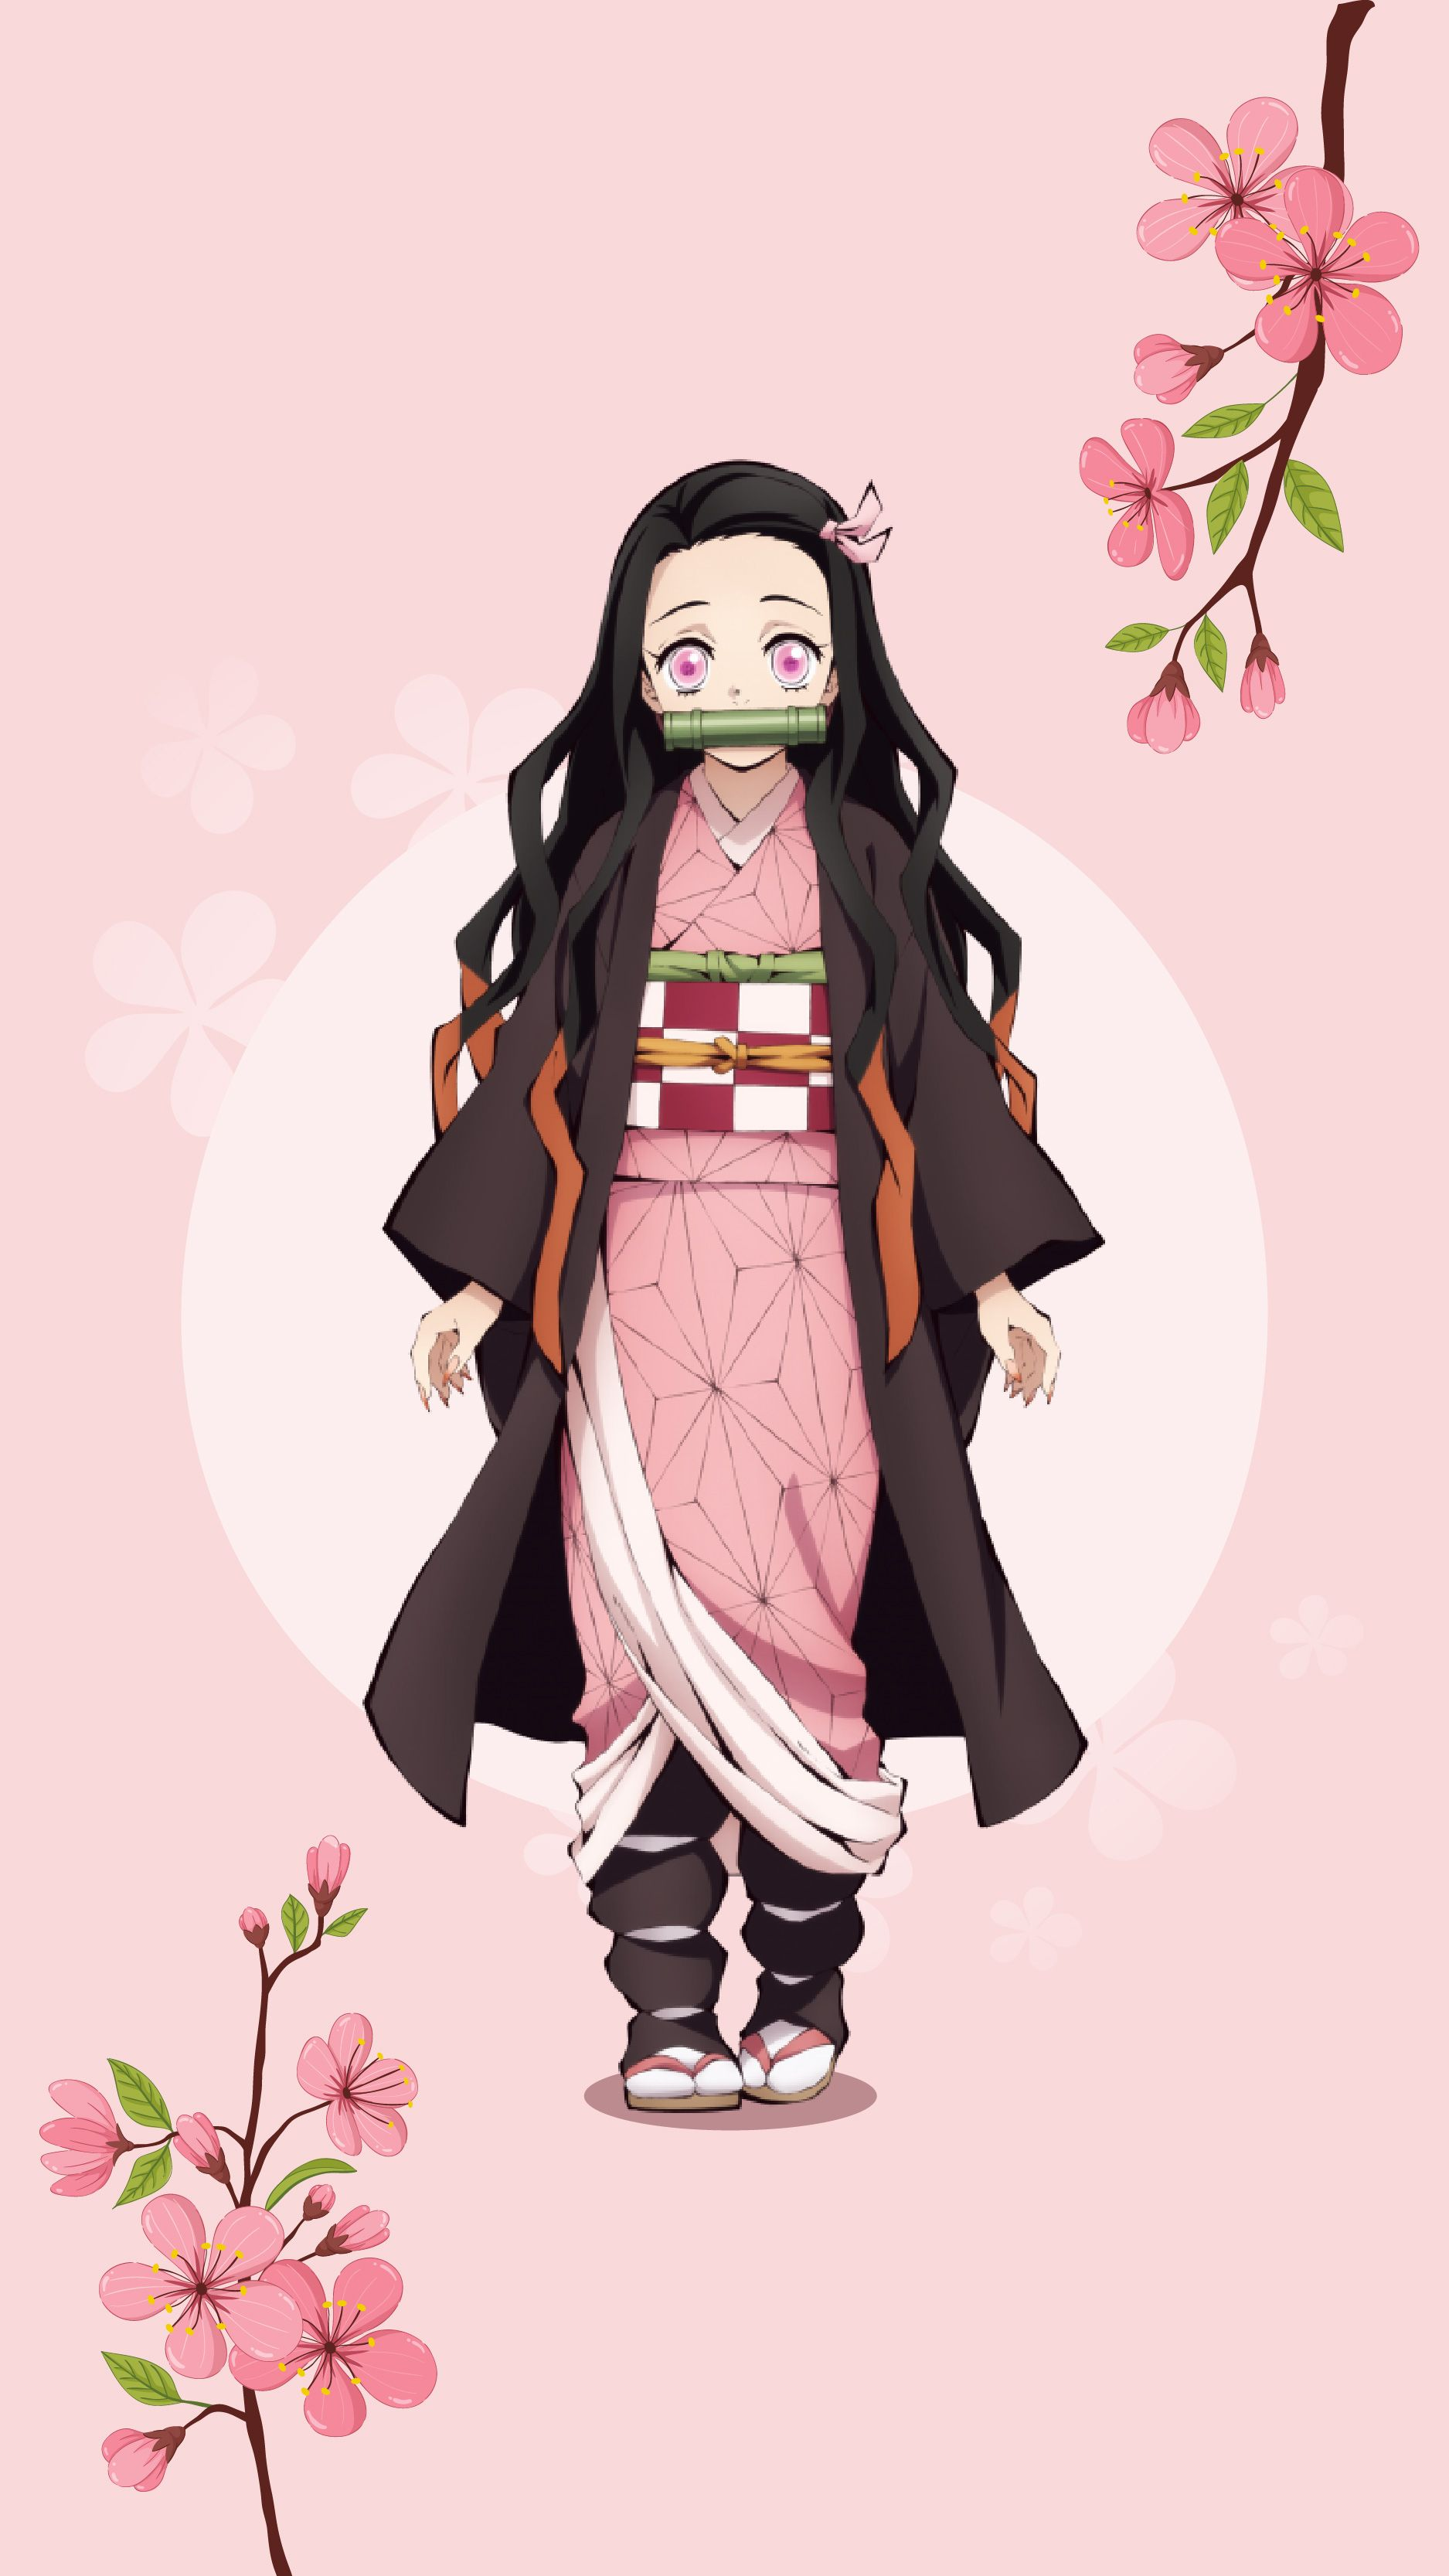 Cute Nezuko Wallpaper : nezuko, wallpaper, Demon, Slayer, Nezuko, Phone, Wallpaper, Anime, Demon,, Wallpaper,, Character